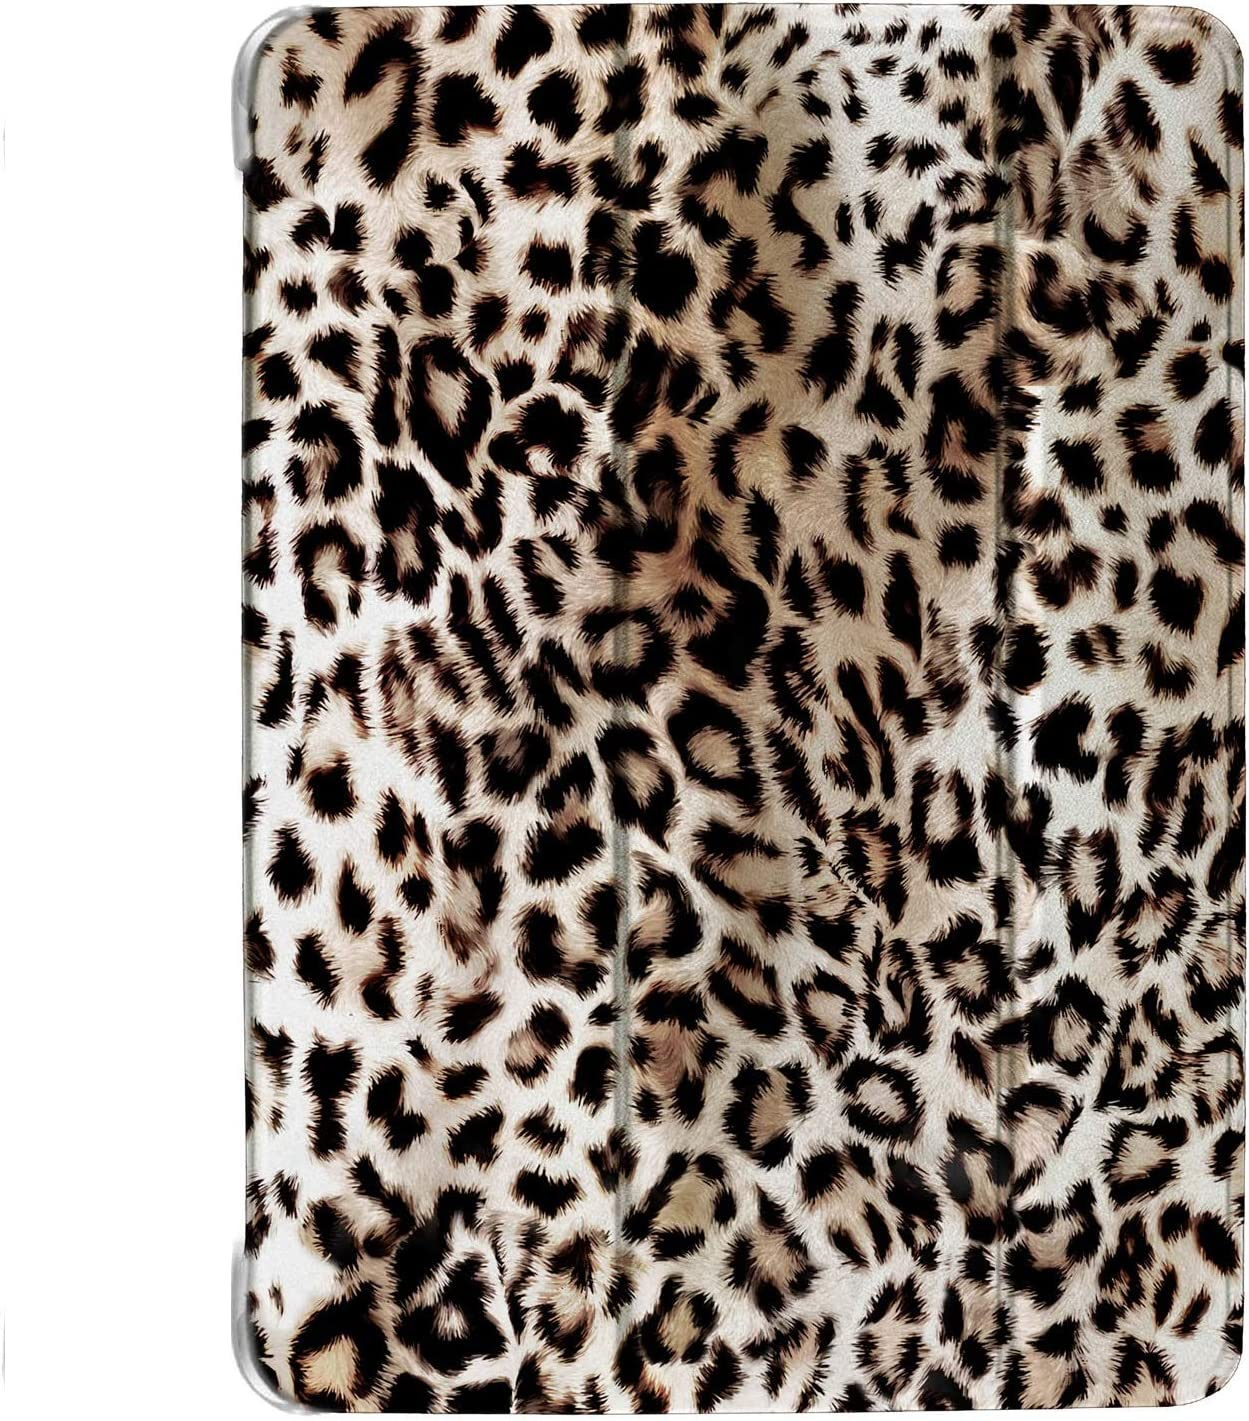 DuraSafe Cases for iPad Mini 4th Gen 2015-7.9 MK6K2LL/A MK6J2LL/A MK6L2LL/A MK9J2LL/A MK9H2LL/A Ultra Slim Energy Saving Printed Case with Adjustable Stand Feature and Sleek Design - Leopard